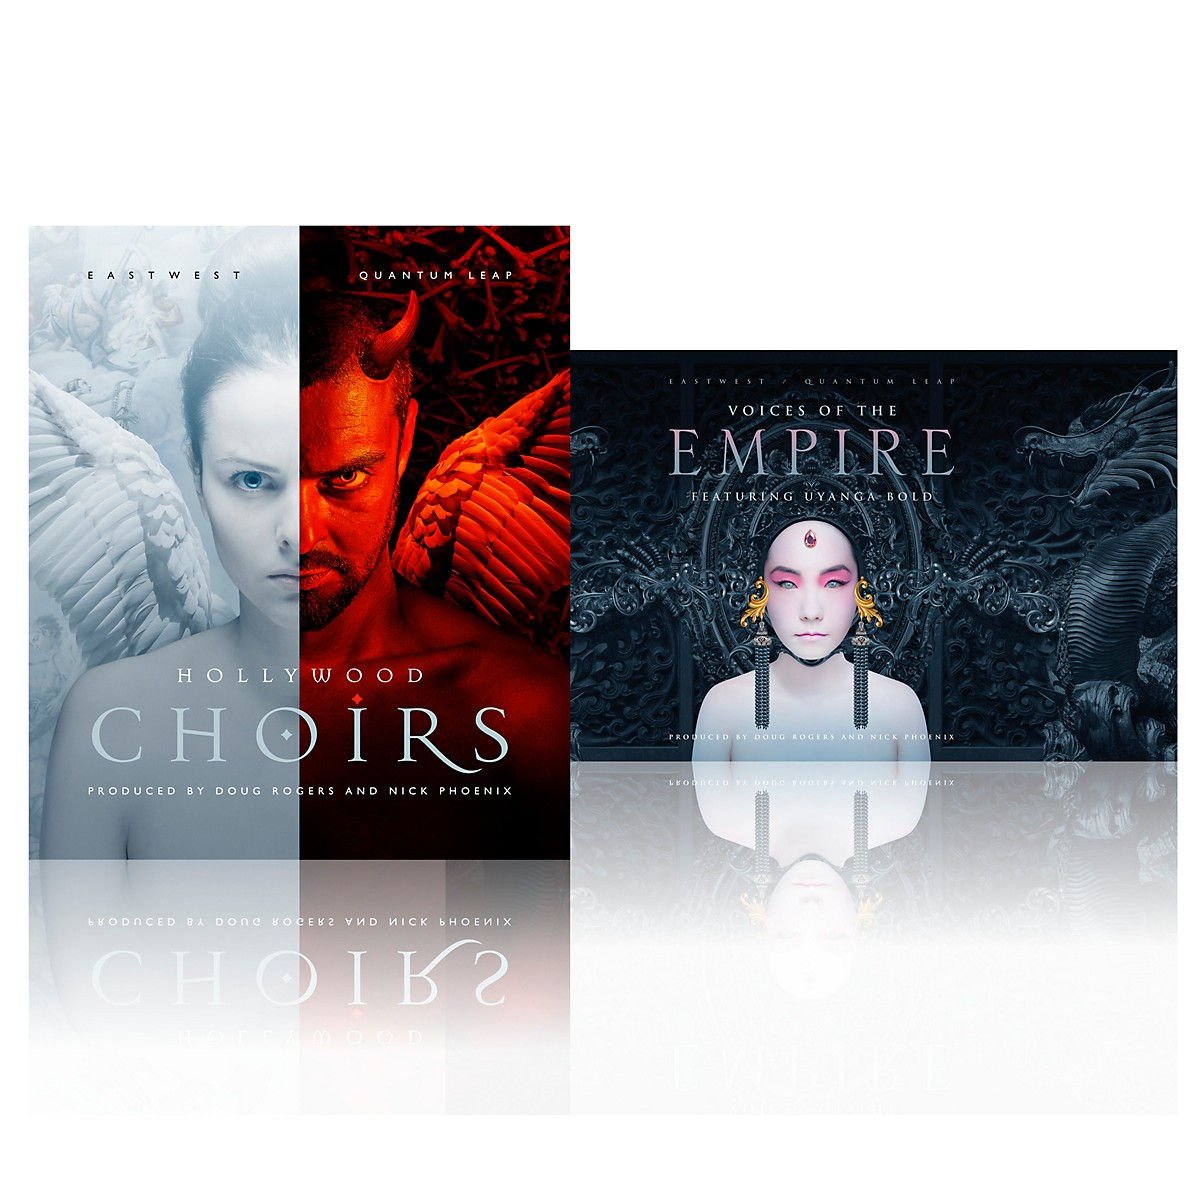 EastWest Hollywood Choirs Gold + Voices Of The Empire Bundle